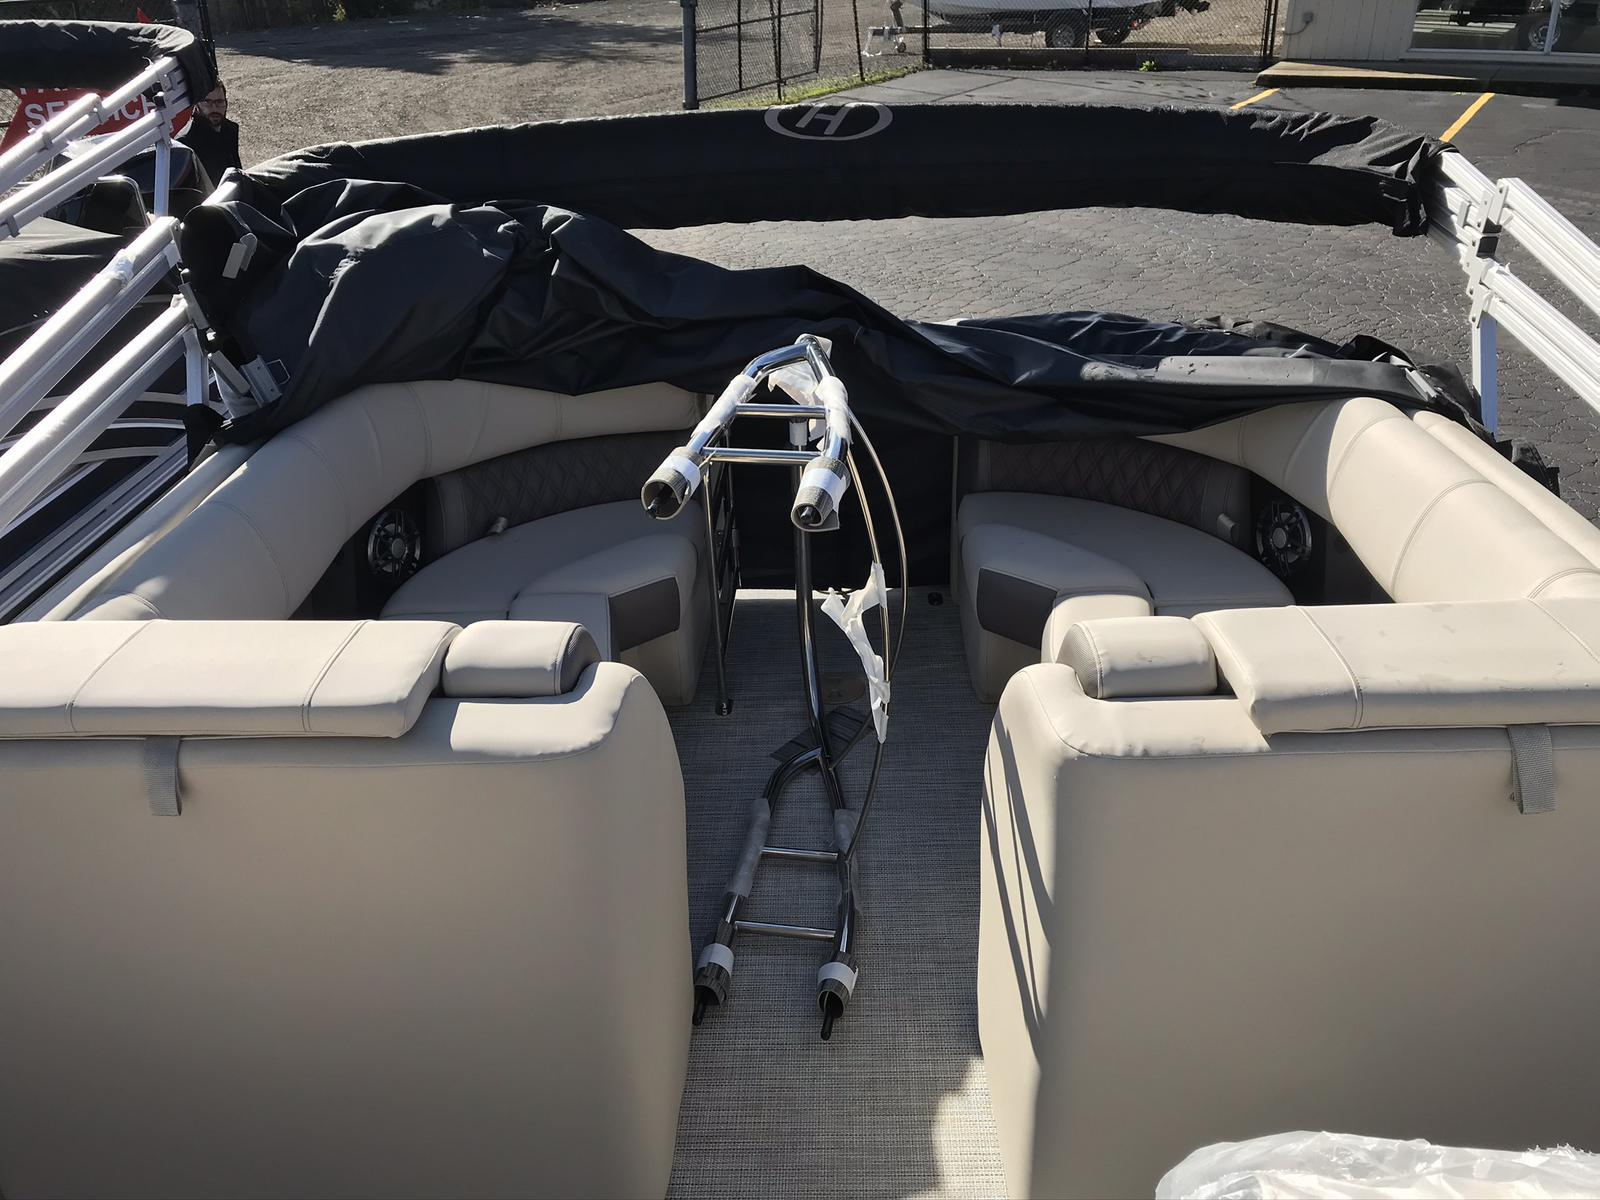 2021 Harris boat for sale, model of the boat is Solstice 230 & Image # 8 of 12